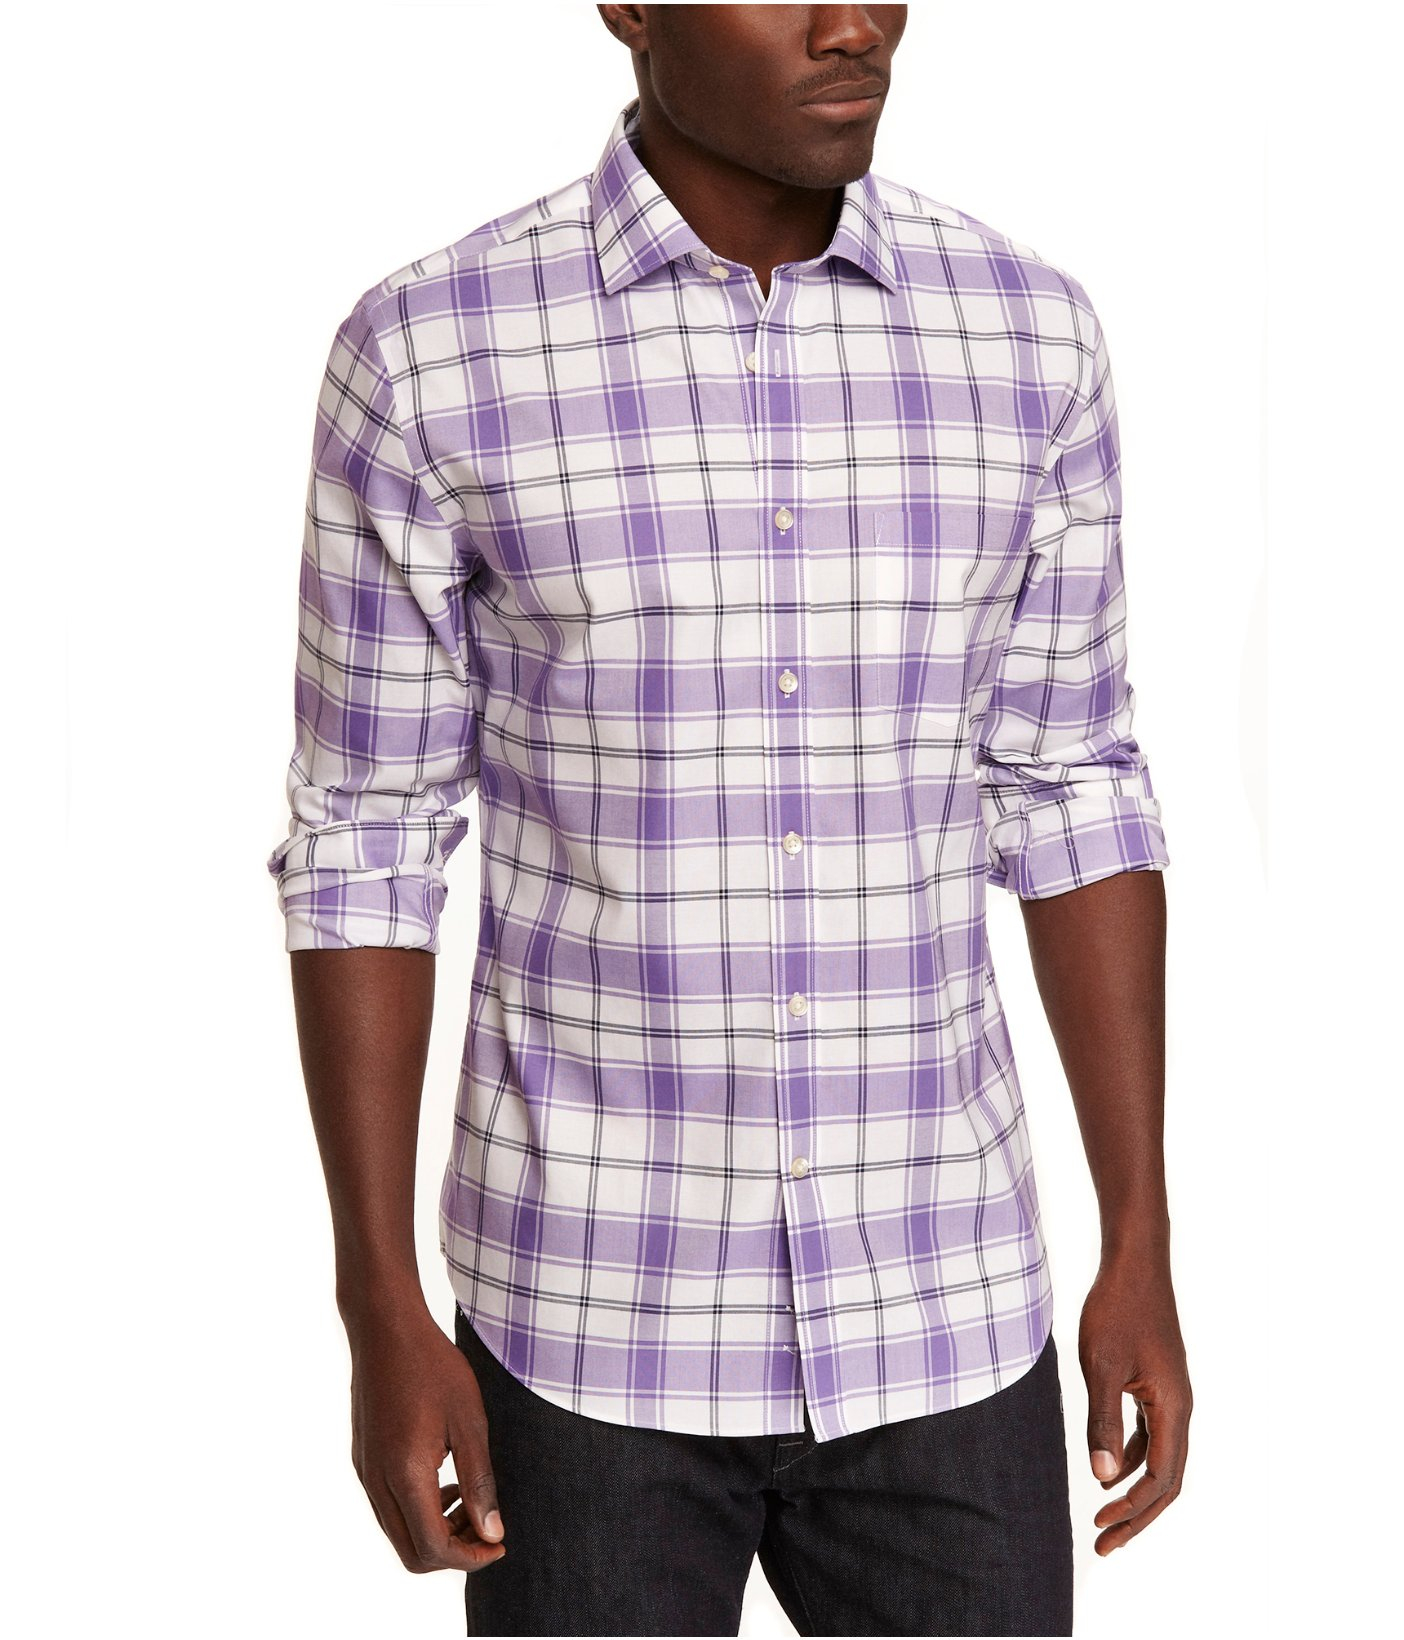 Shop for customizable Purple Plaid clothing on Zazzle. Check out our t-shirts, polo shirts, hoodies, & more great items. Start browsing today!